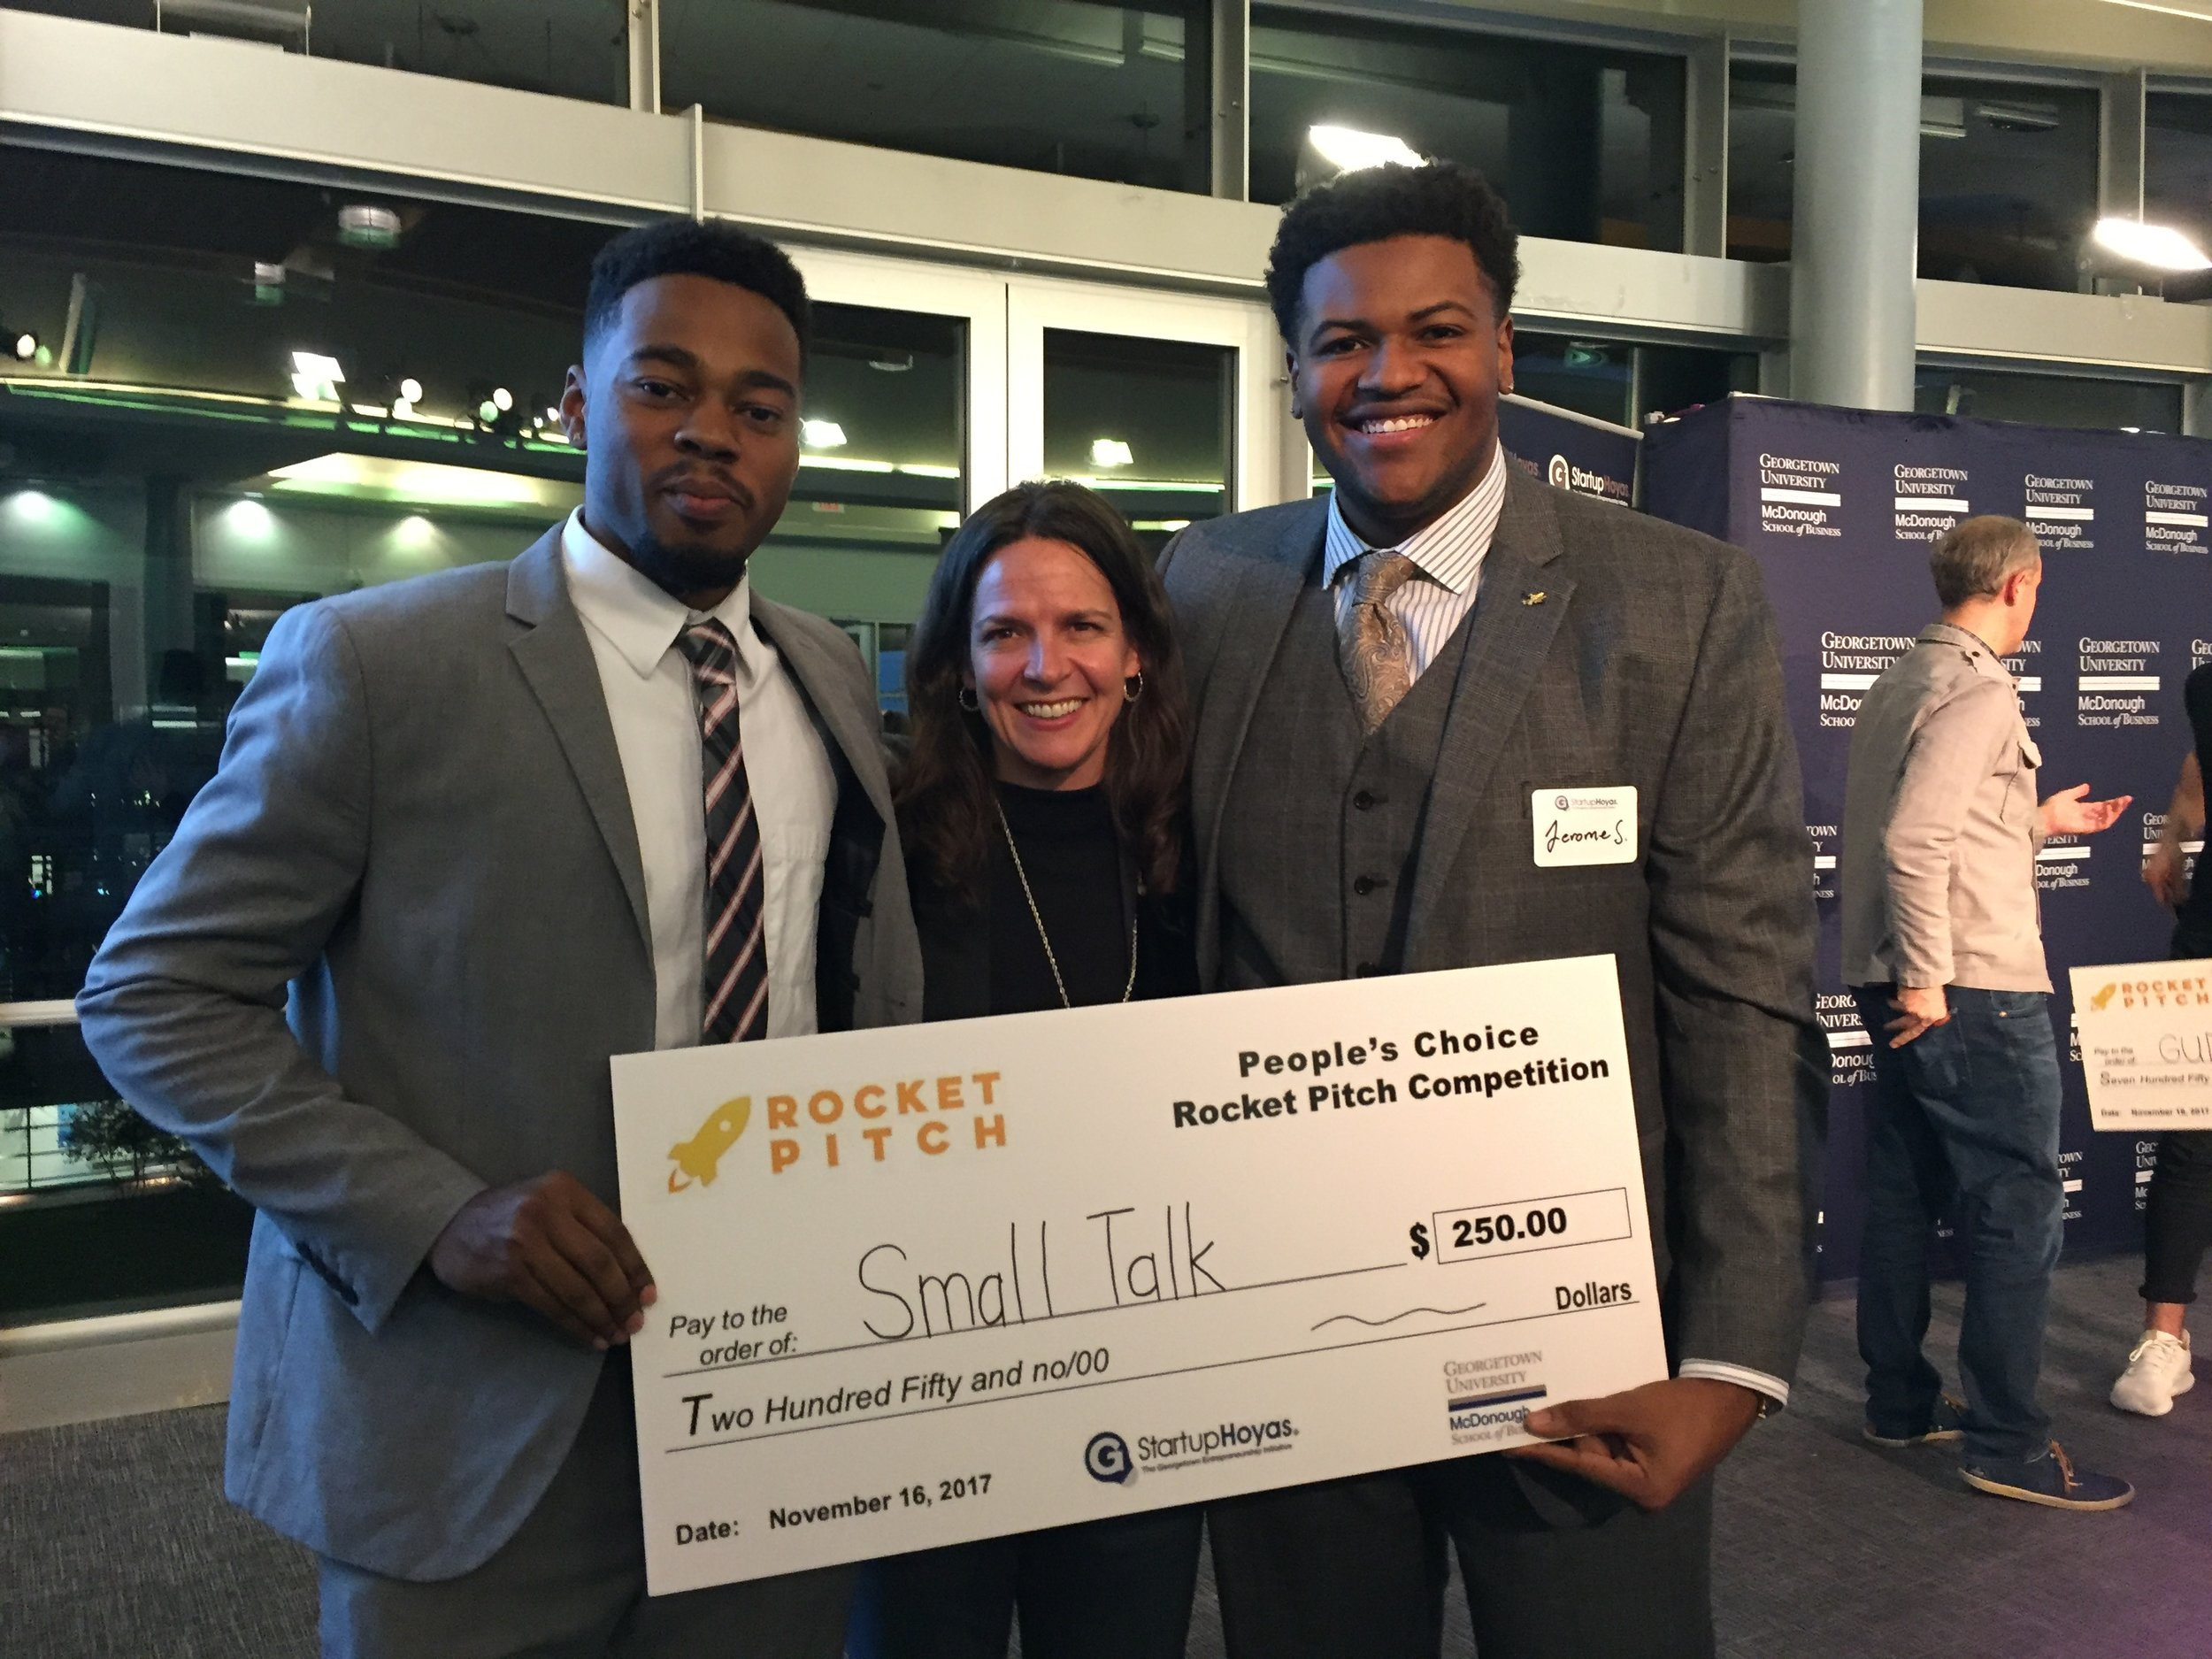 How to Create a Winning Pitch: What to Say, Show and Do - PowerPoint for Georgetown Entrepreneurs Competing in University Pitch Competitions